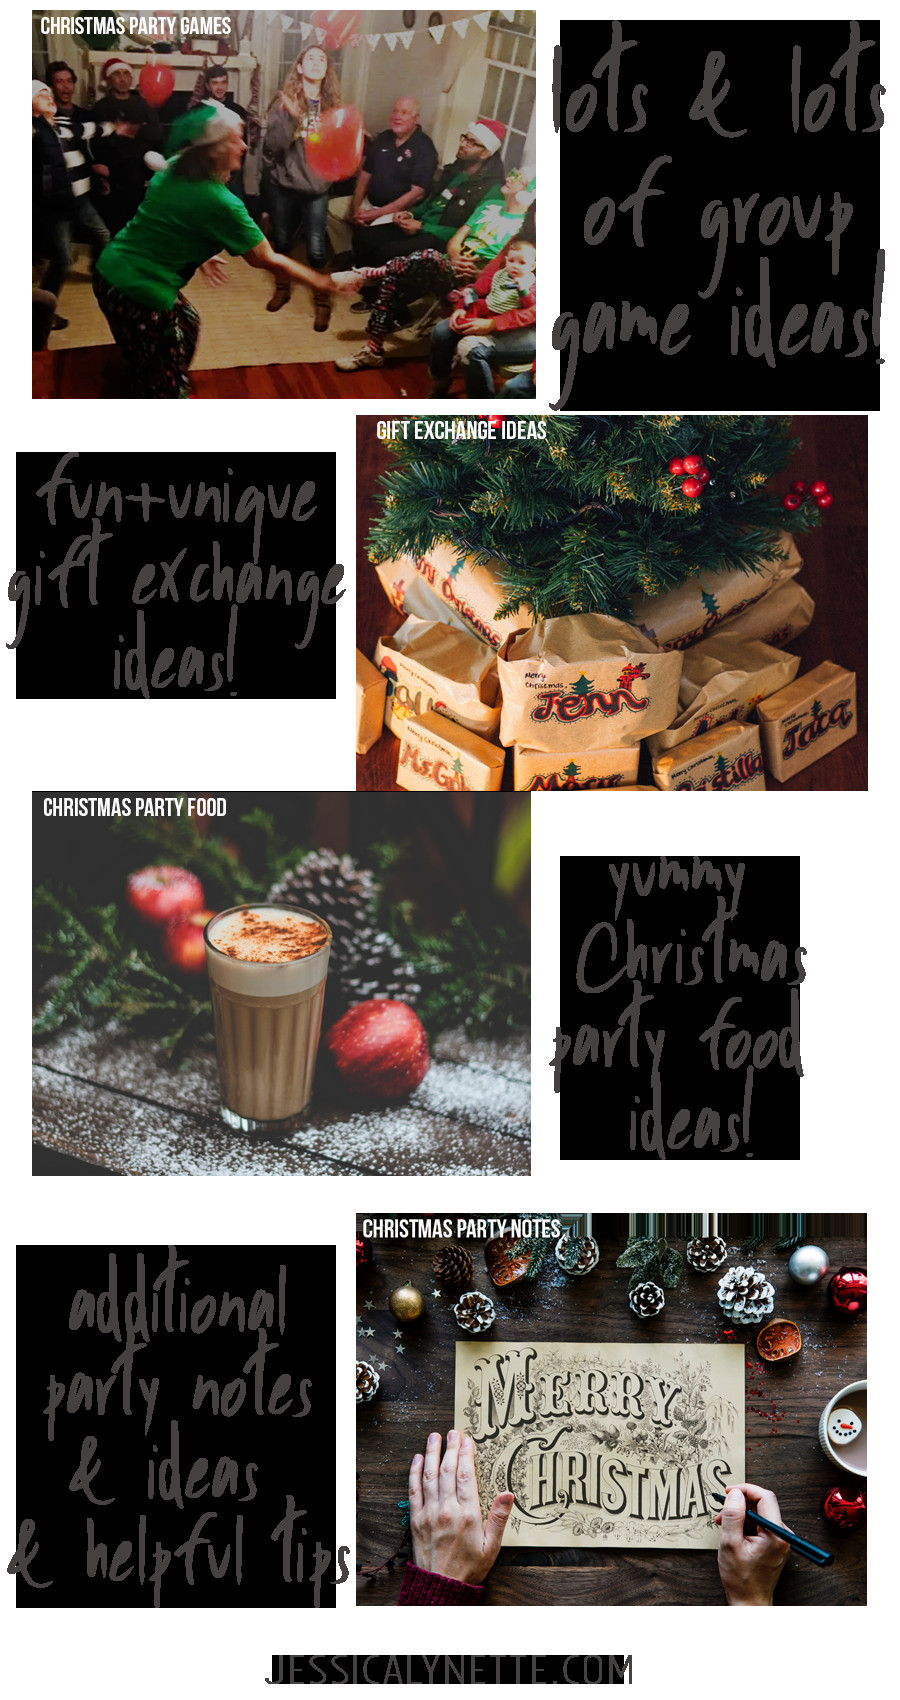 Christmas Party Menu Ideas For Large Groups  Christmas Party Ideas and Games